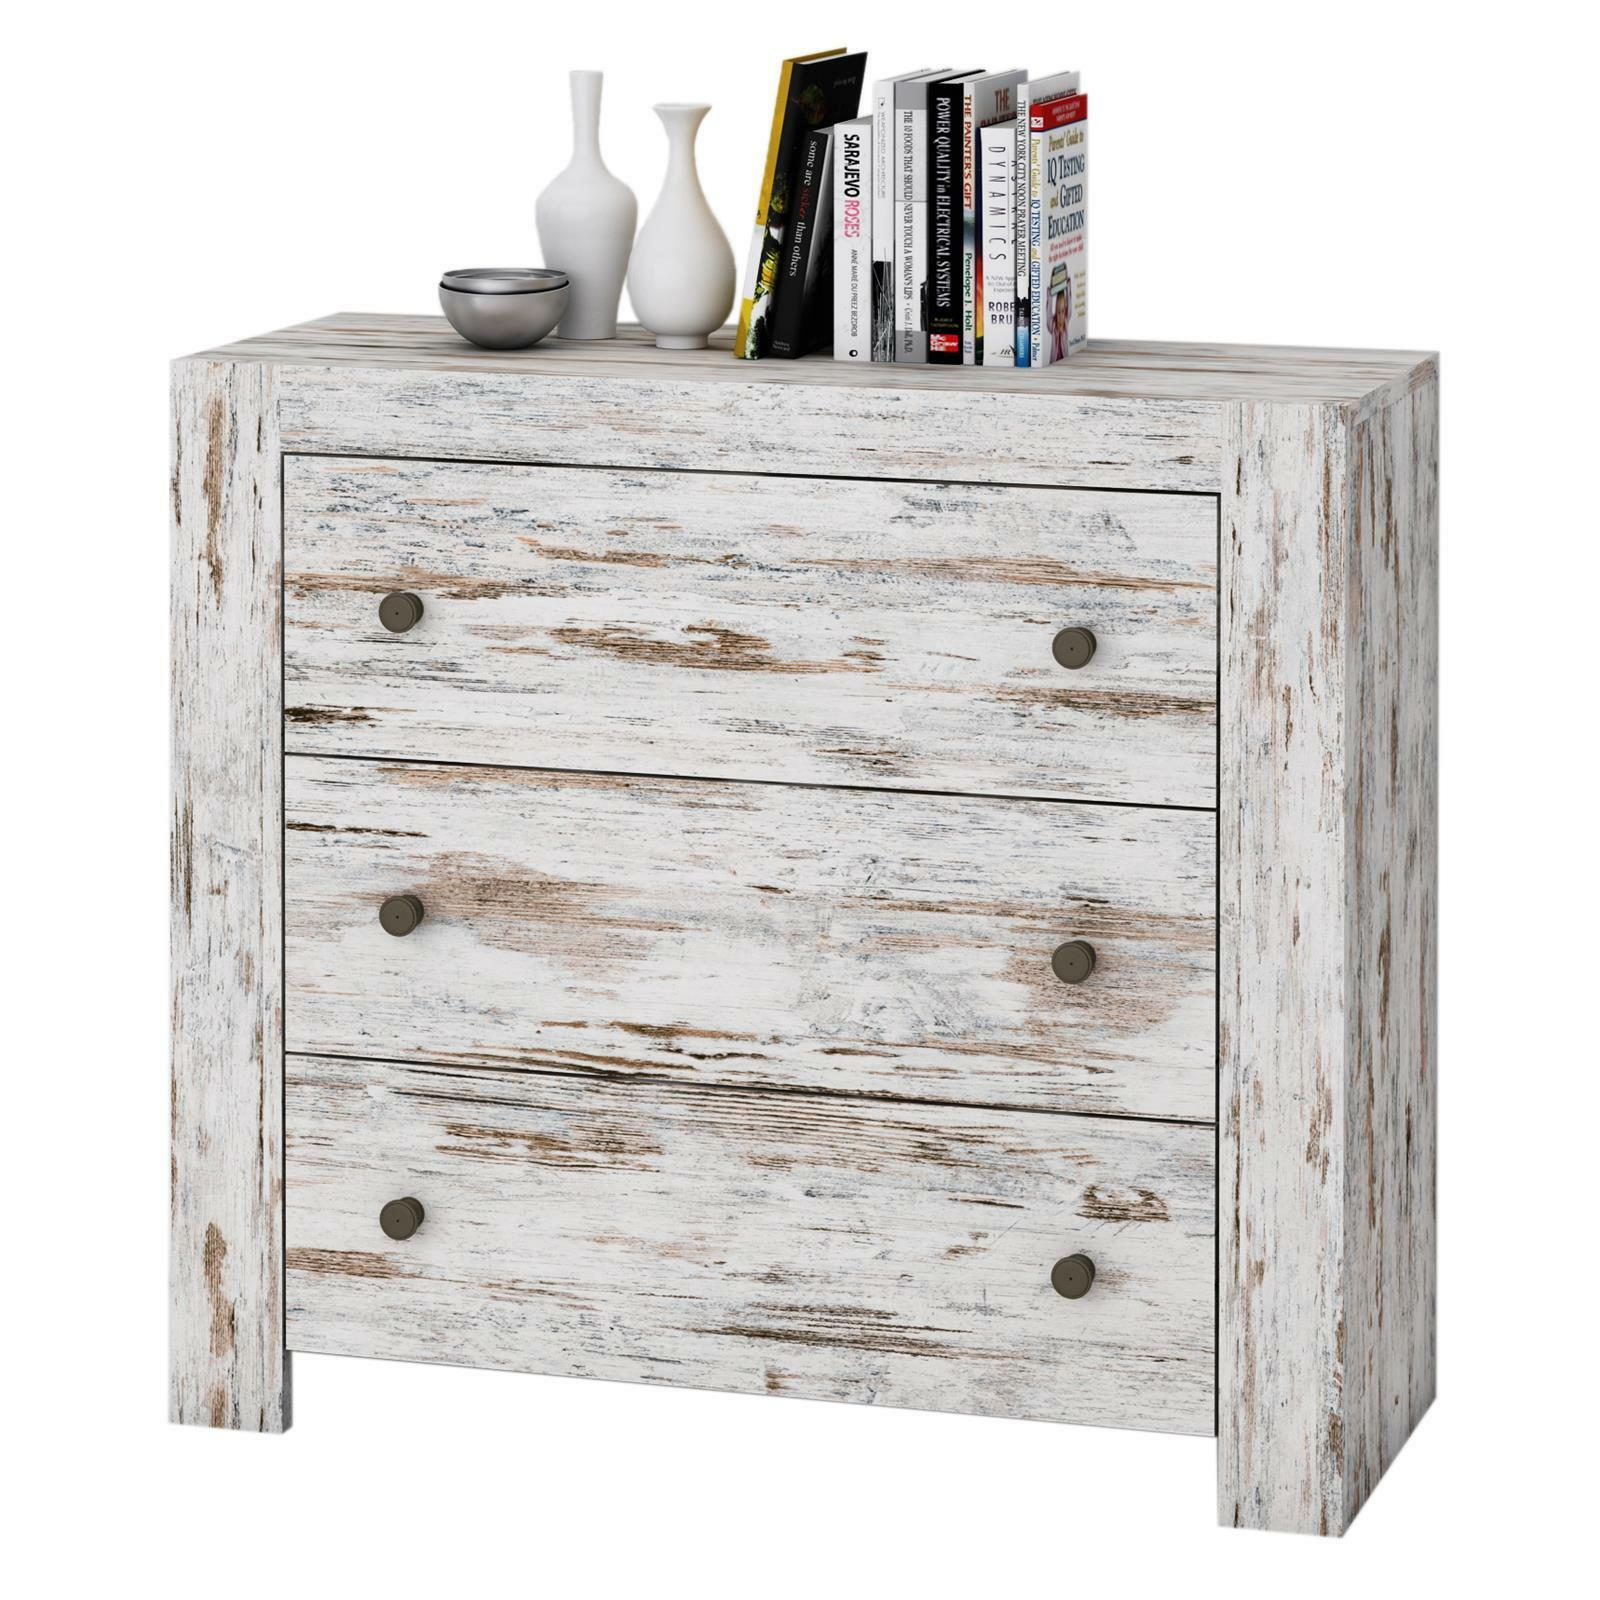 kommode sideboard anrichte landhaus shabby chic vintage. Black Bedroom Furniture Sets. Home Design Ideas